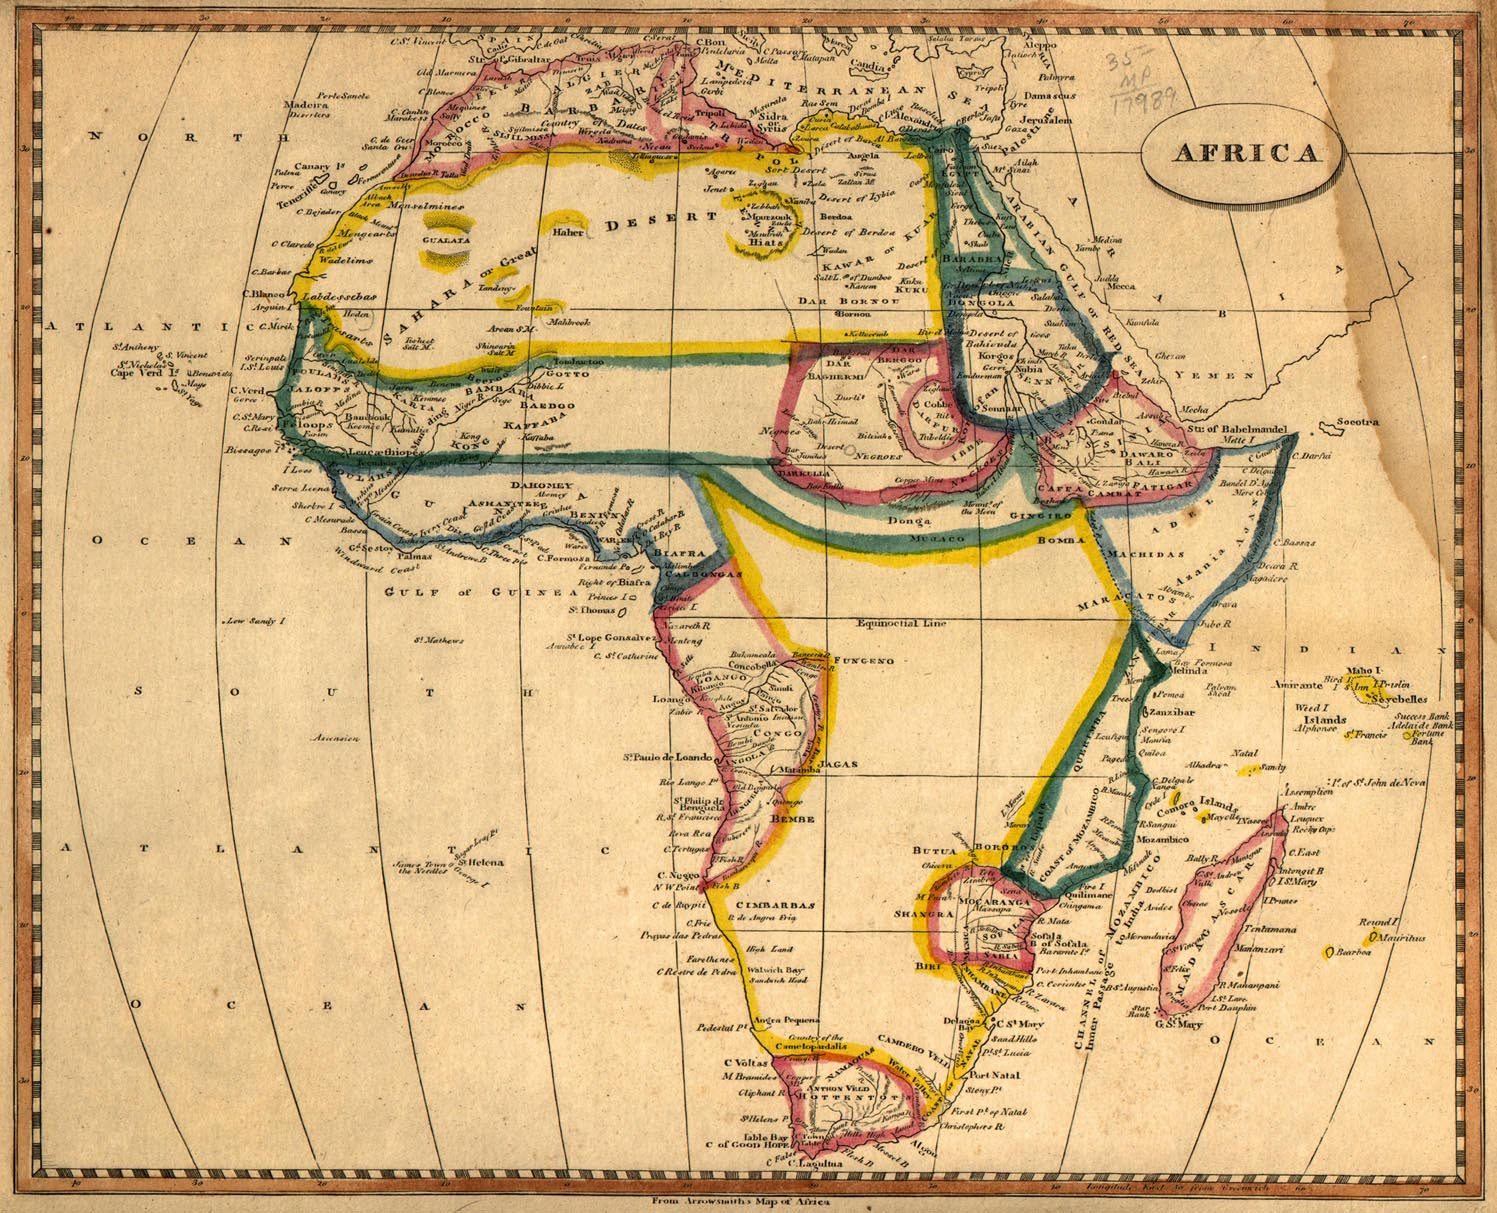 BLACK HISTORY MONTH  BLACK HISTORY IS MORE THAN JUST A MONTH  DRUSILLA    Nubian Empire Map